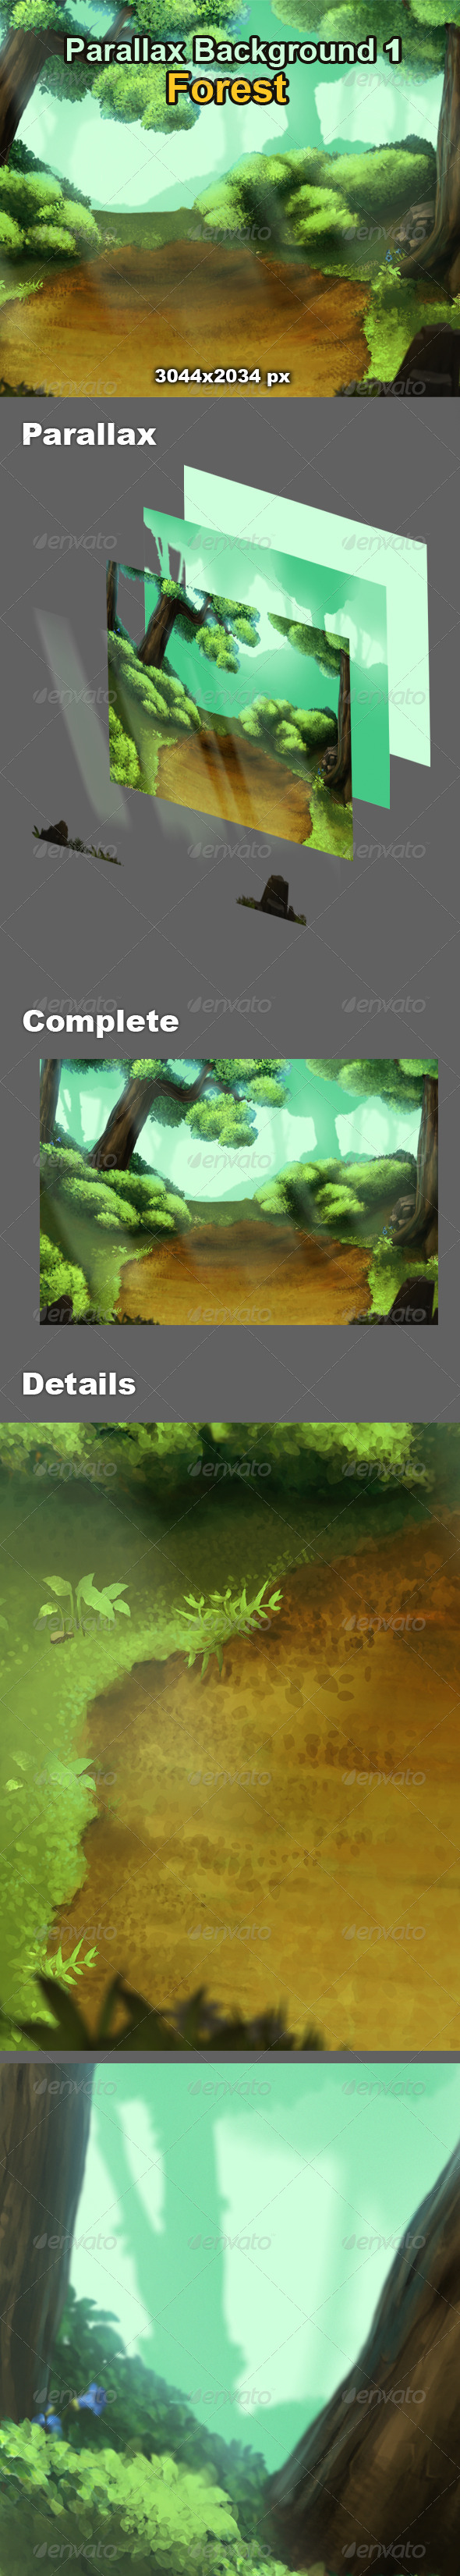 GraphicRiver Parallax Background 1 Forest 7956536